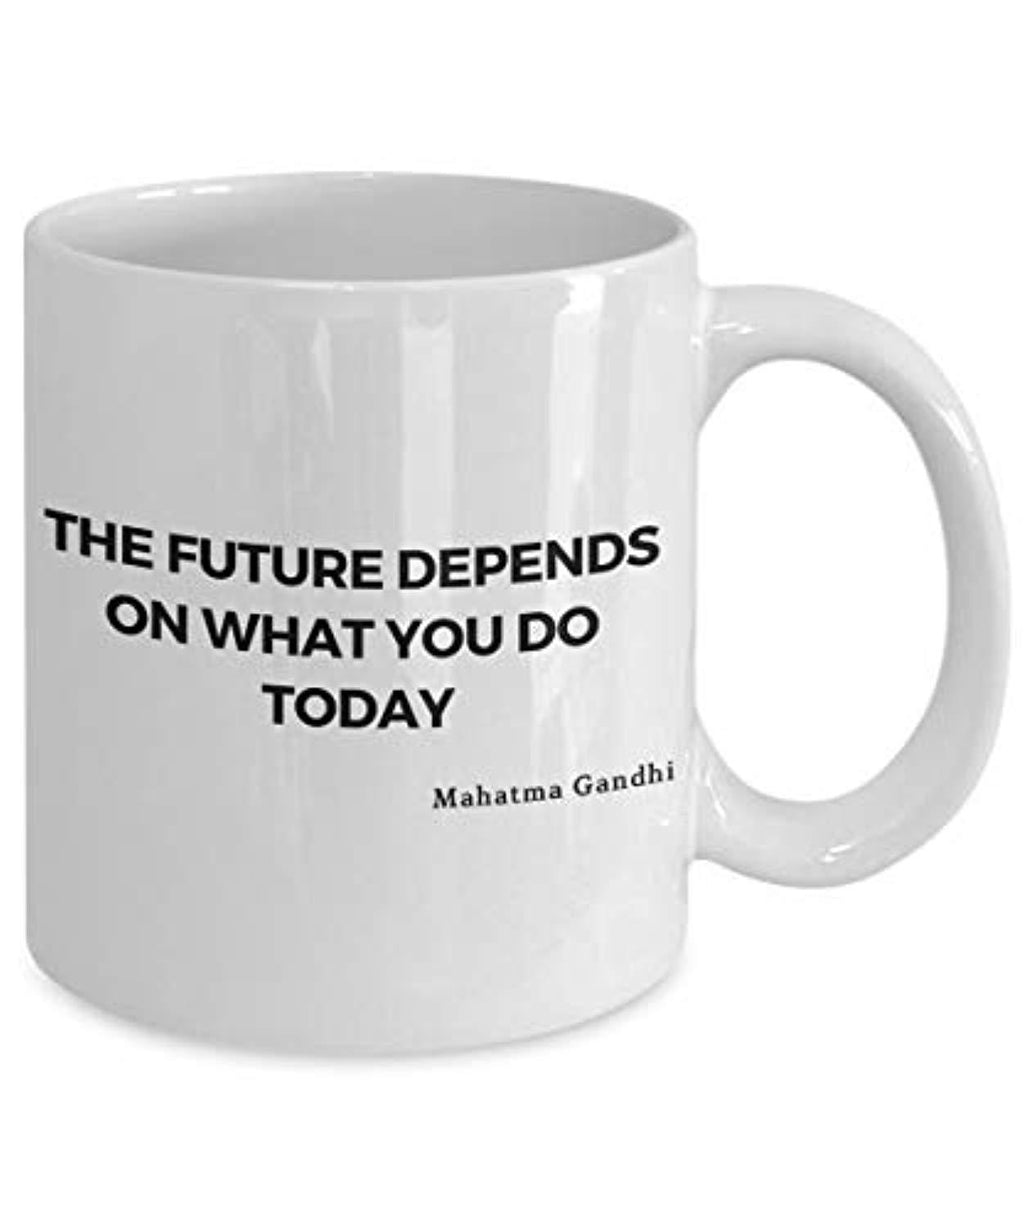 The Future Depends on what you do today mug